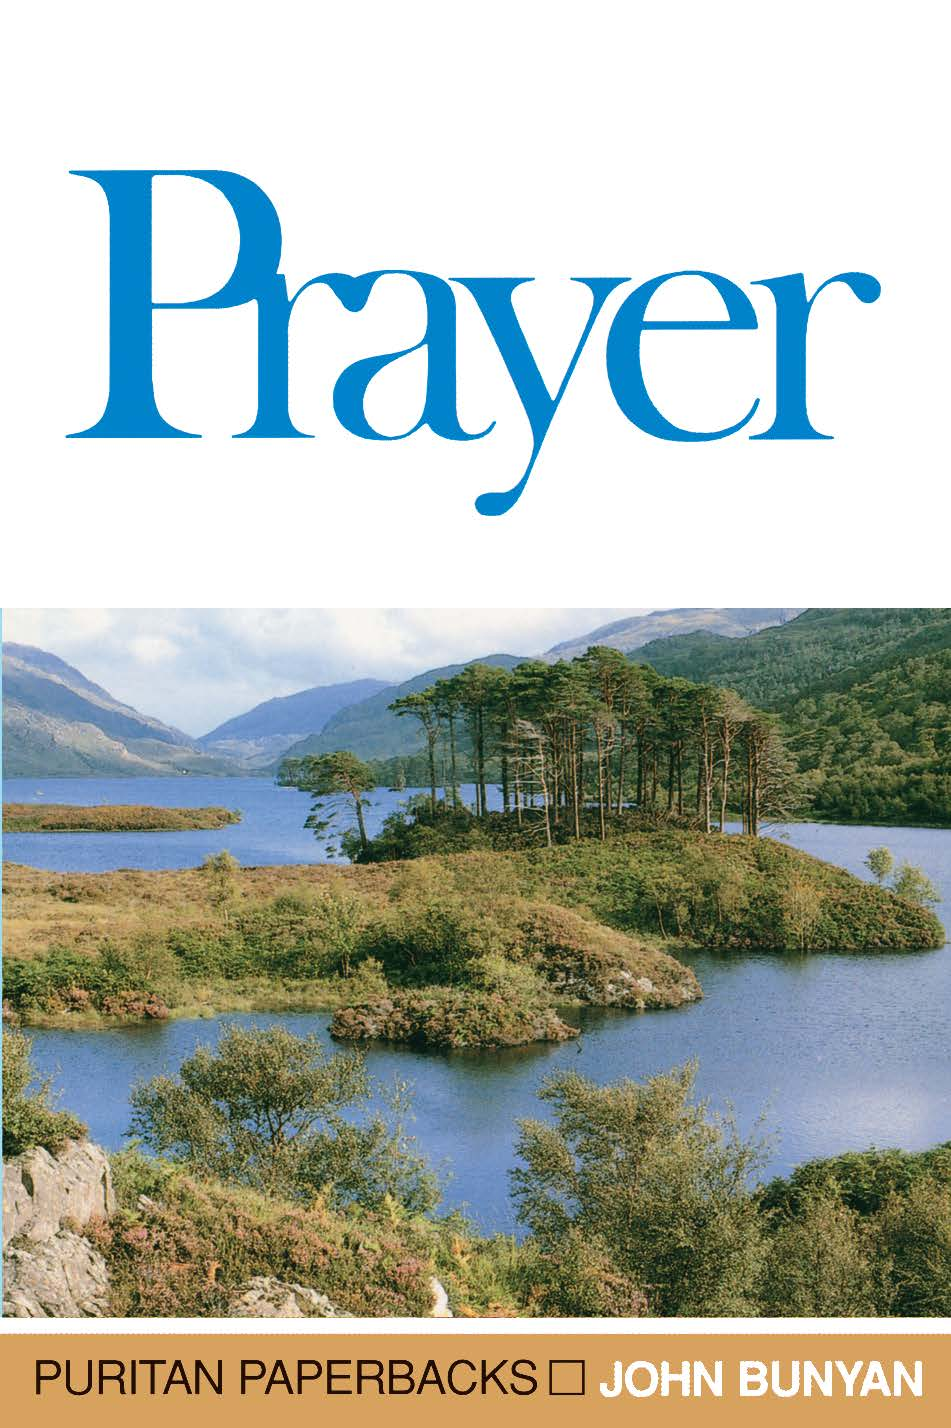 prayer cover image (John Bunyan)